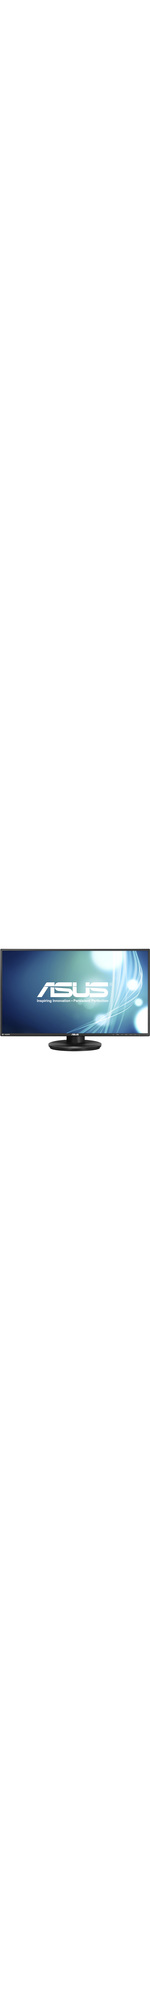 Asus VN279QLB 68.6 cm 27And#34; LED LCD Monitor - 16:9 - 5 ms